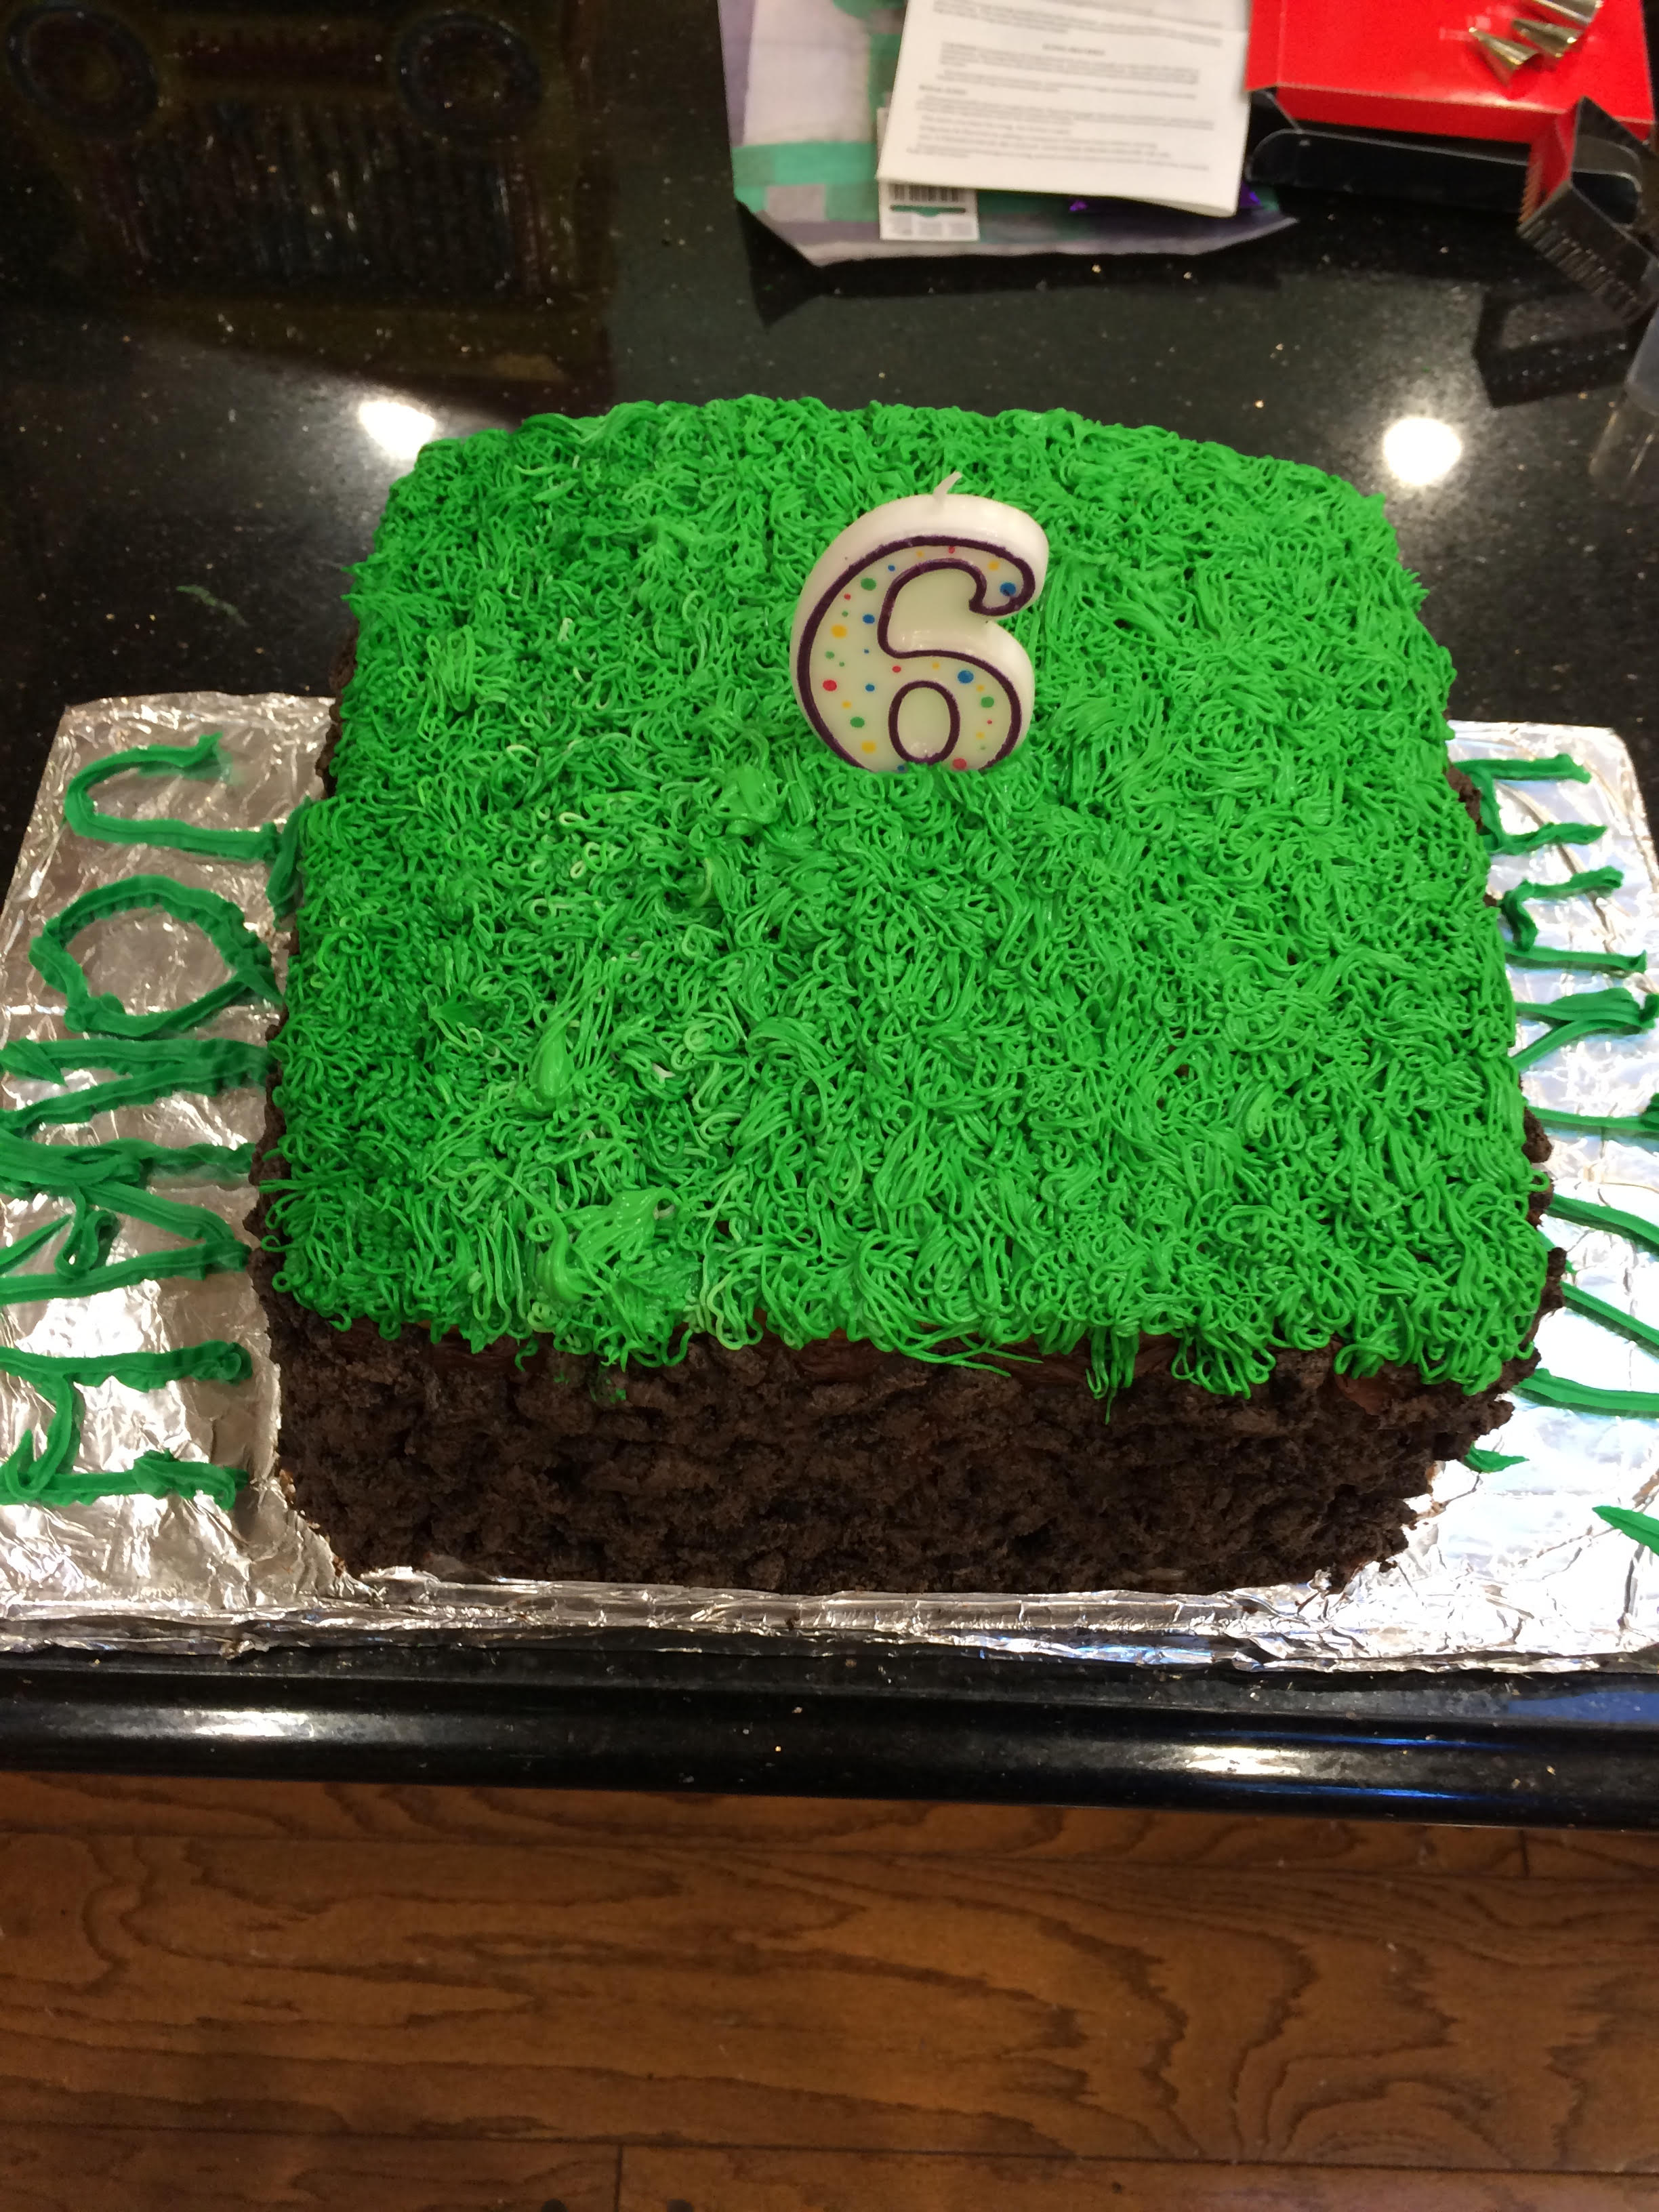 Minecraft grass sod cake 2